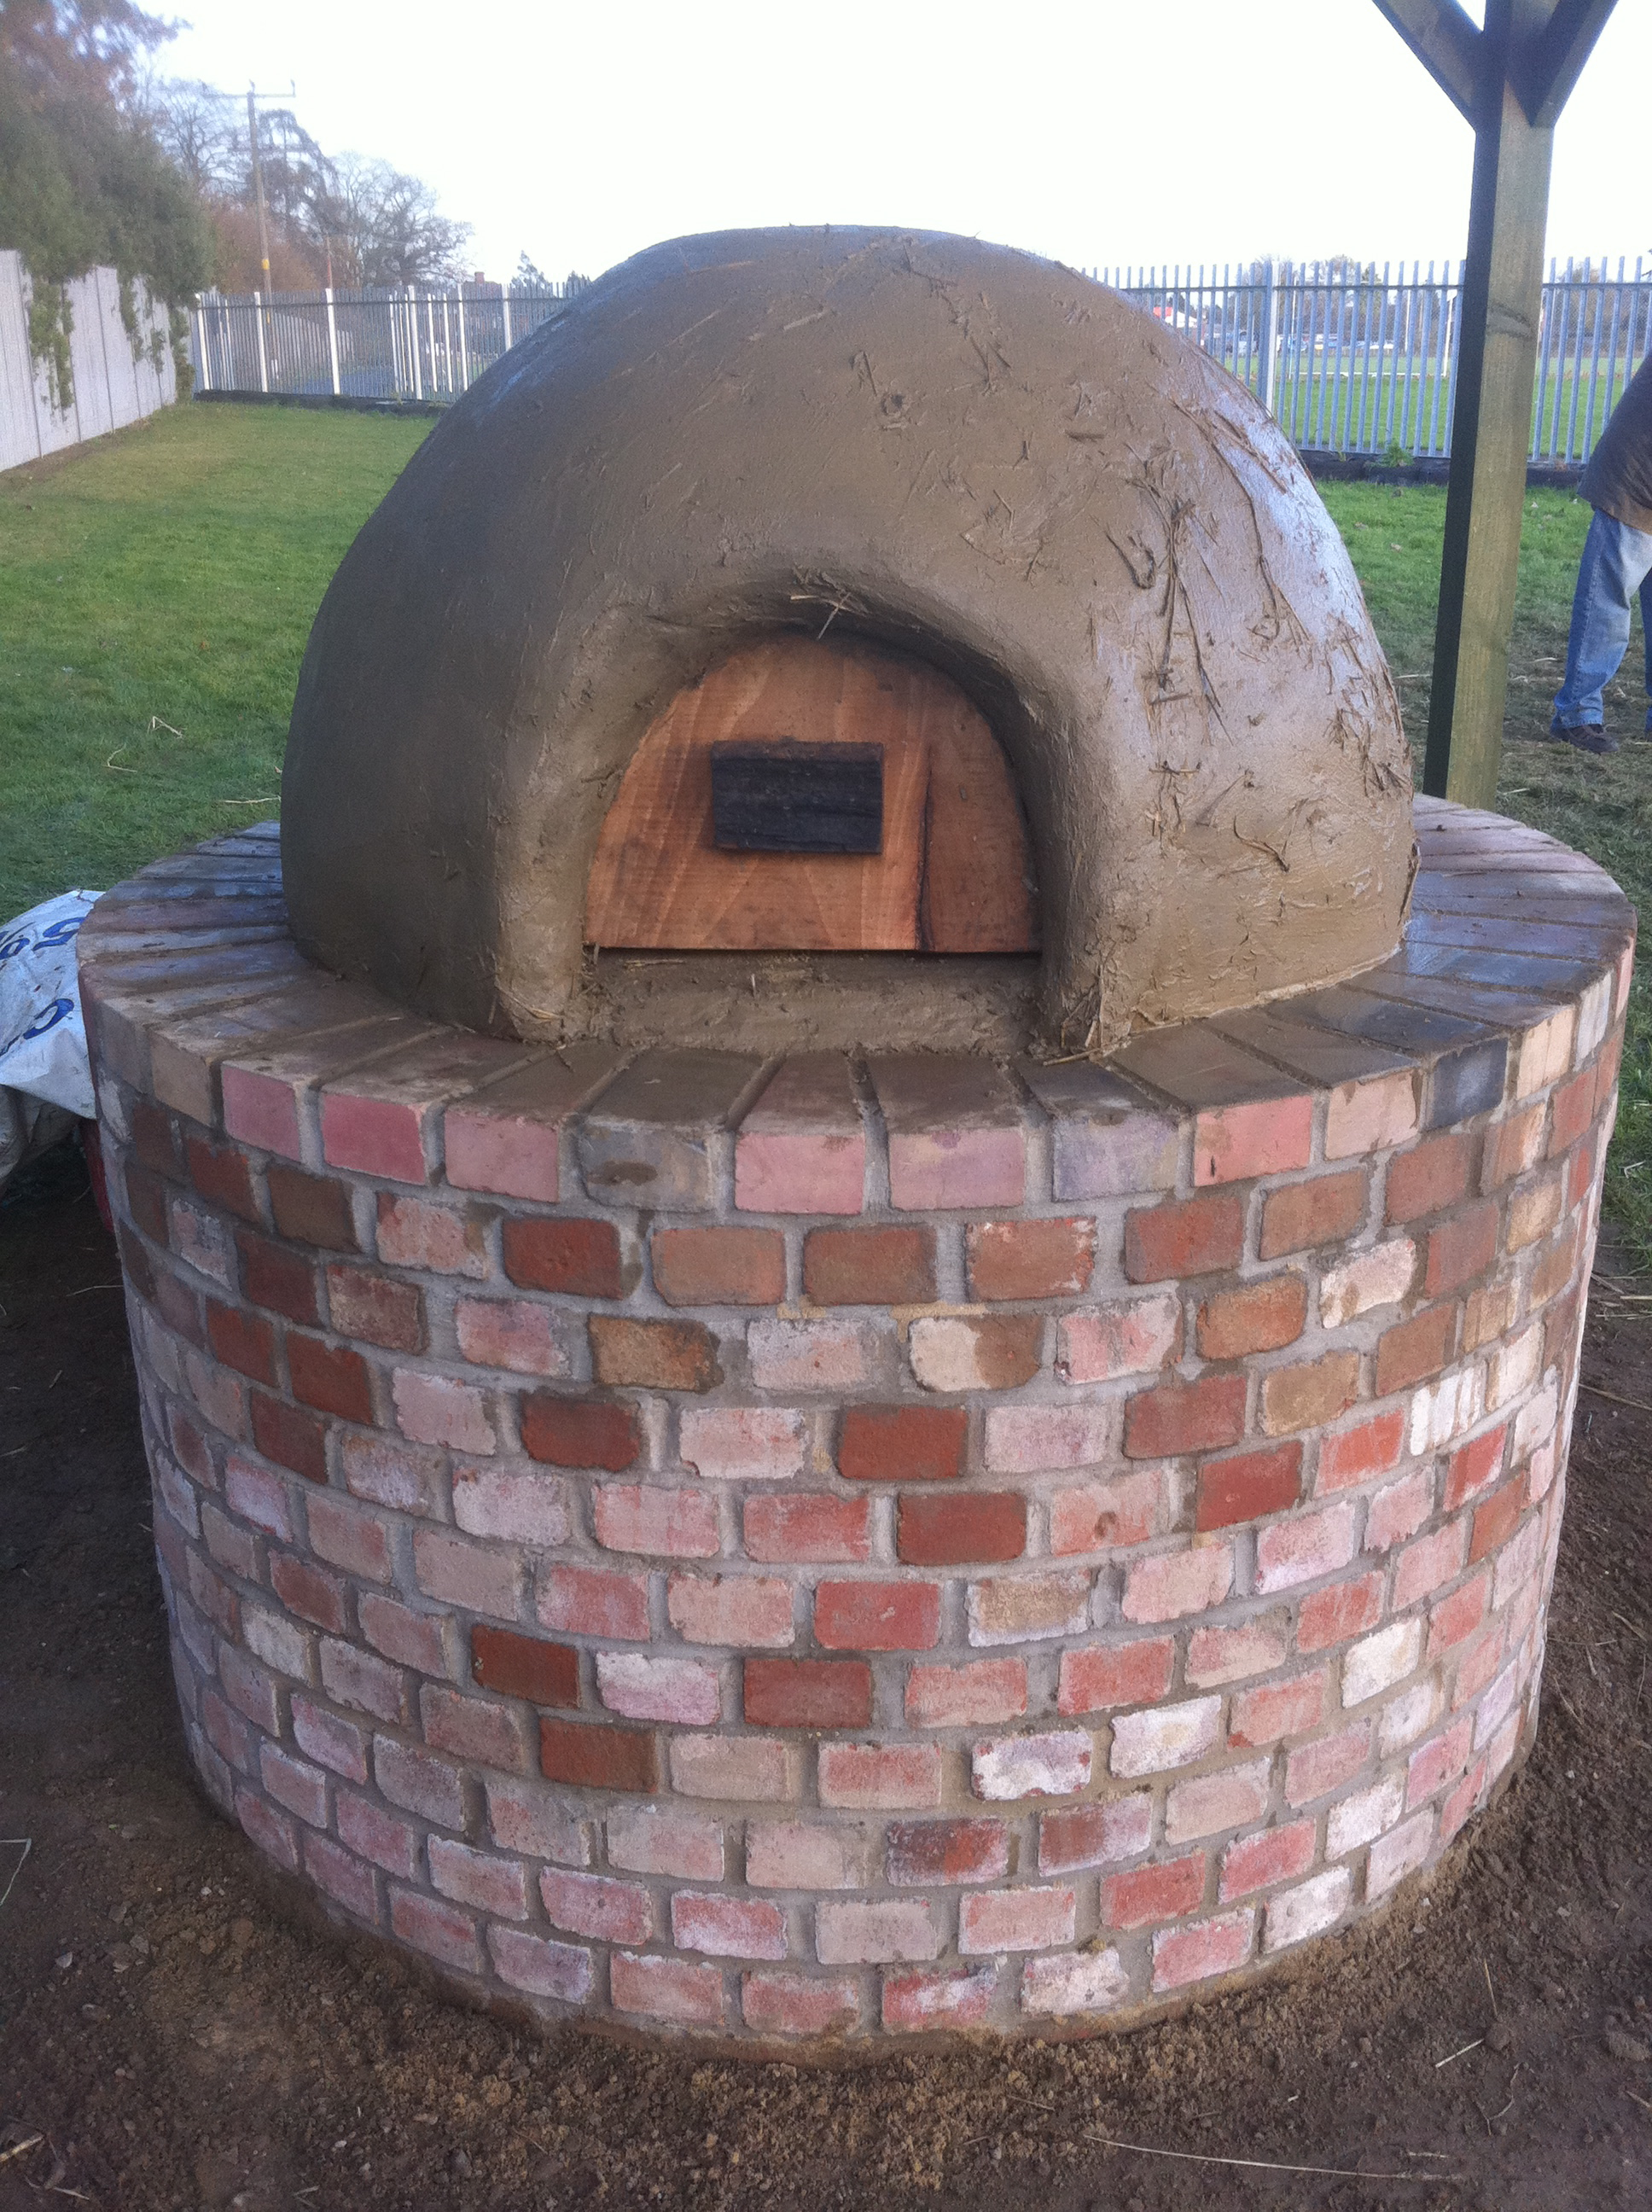 Cob Oven We Built With Students At Wayland Community High